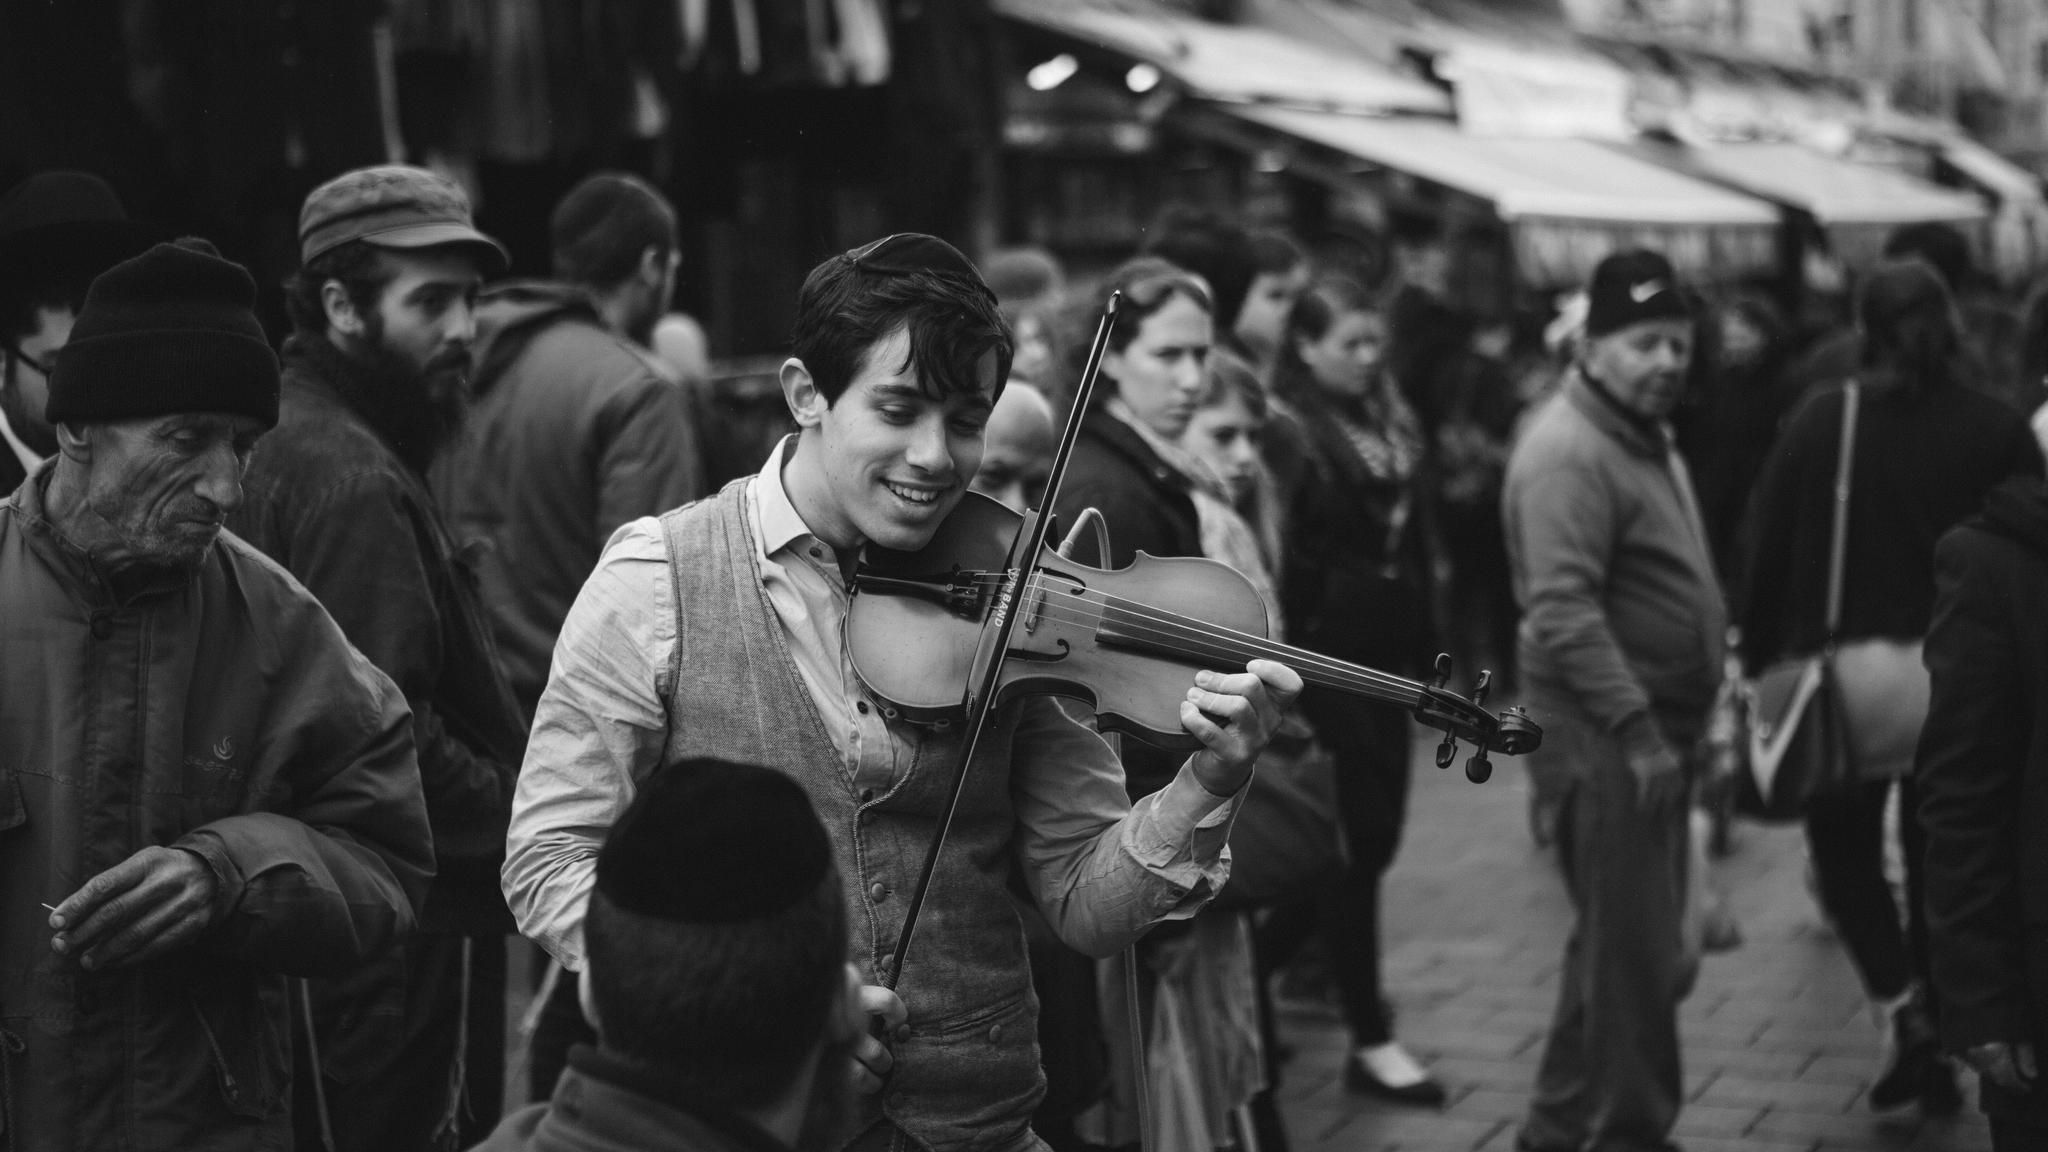 The Street Musician by Silas Baisch on 500px